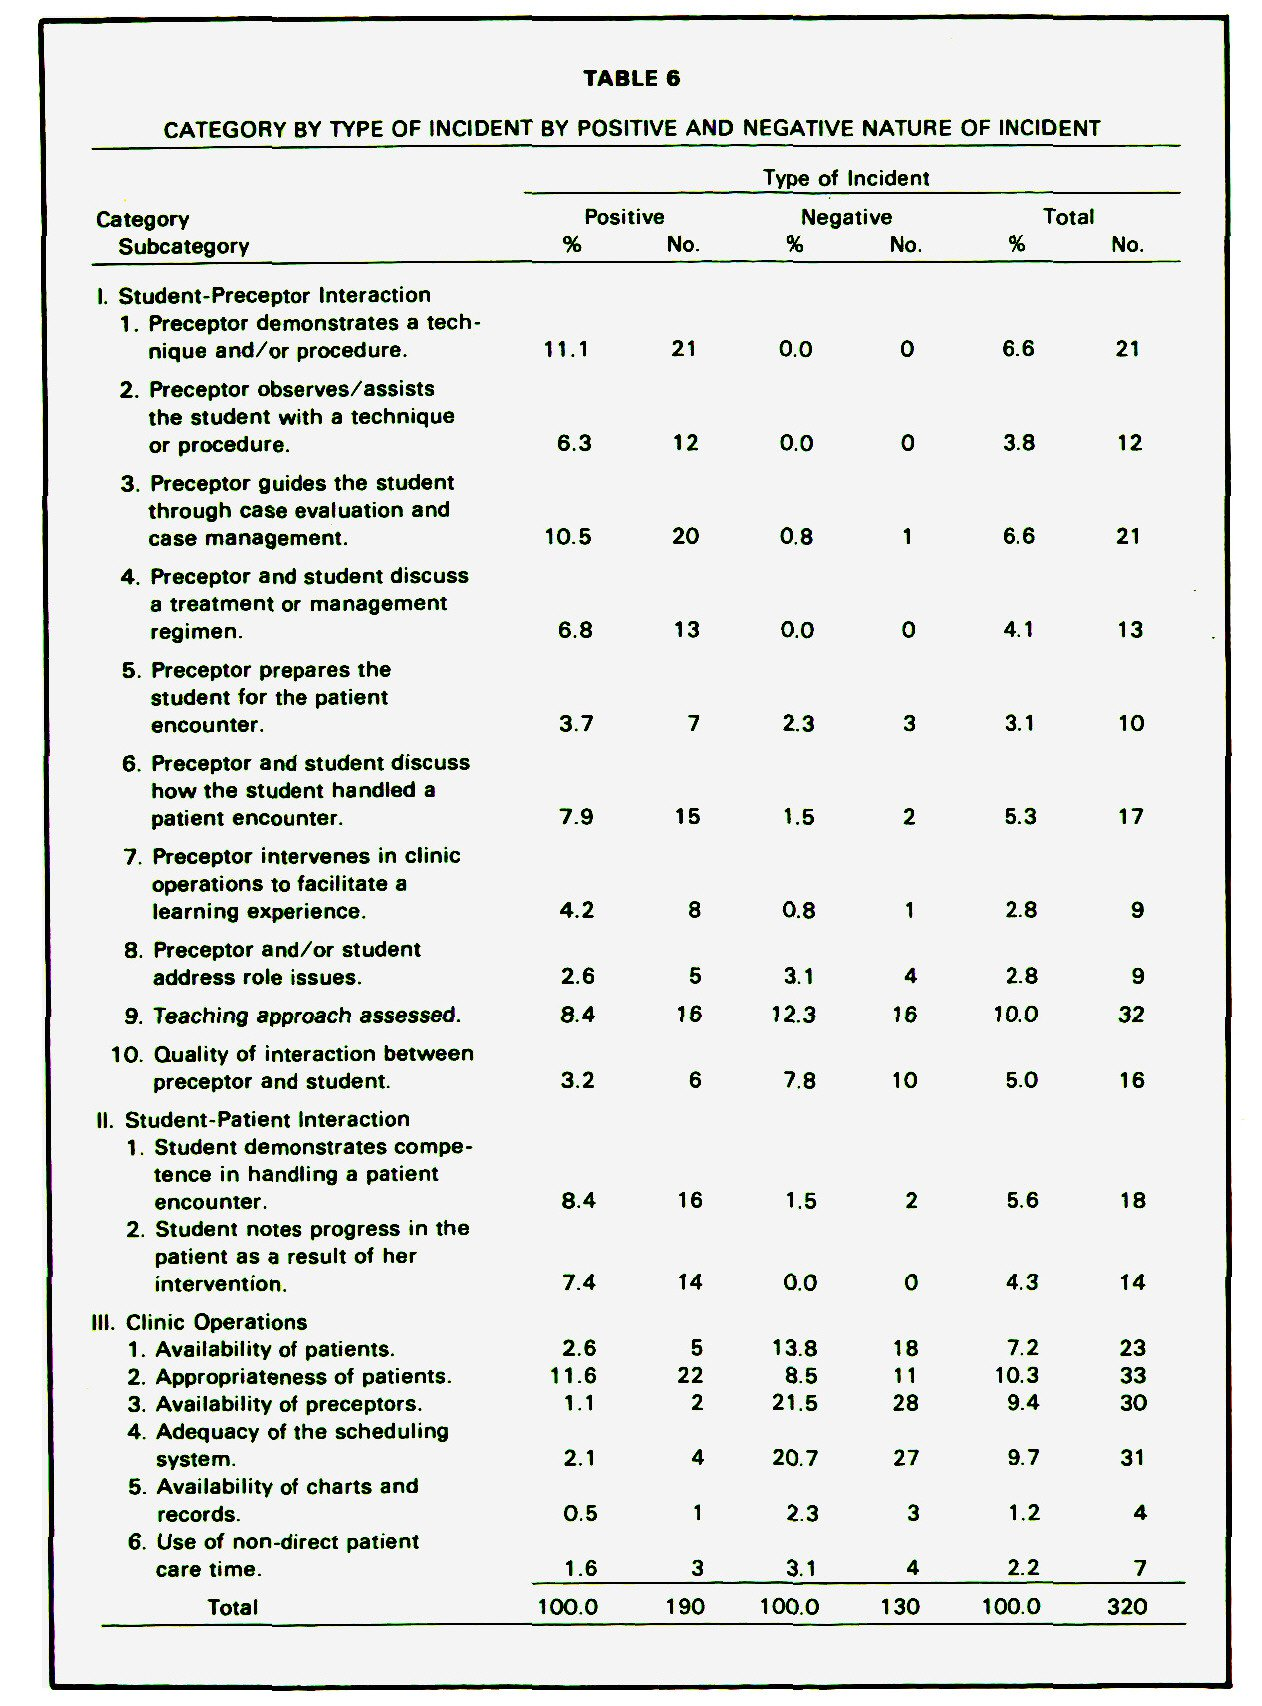 TABLE 6CATEGORY BY TYPE OF INCIDENT BY POSITIVE AND NEGATIVE NATURE OF INCIDENT